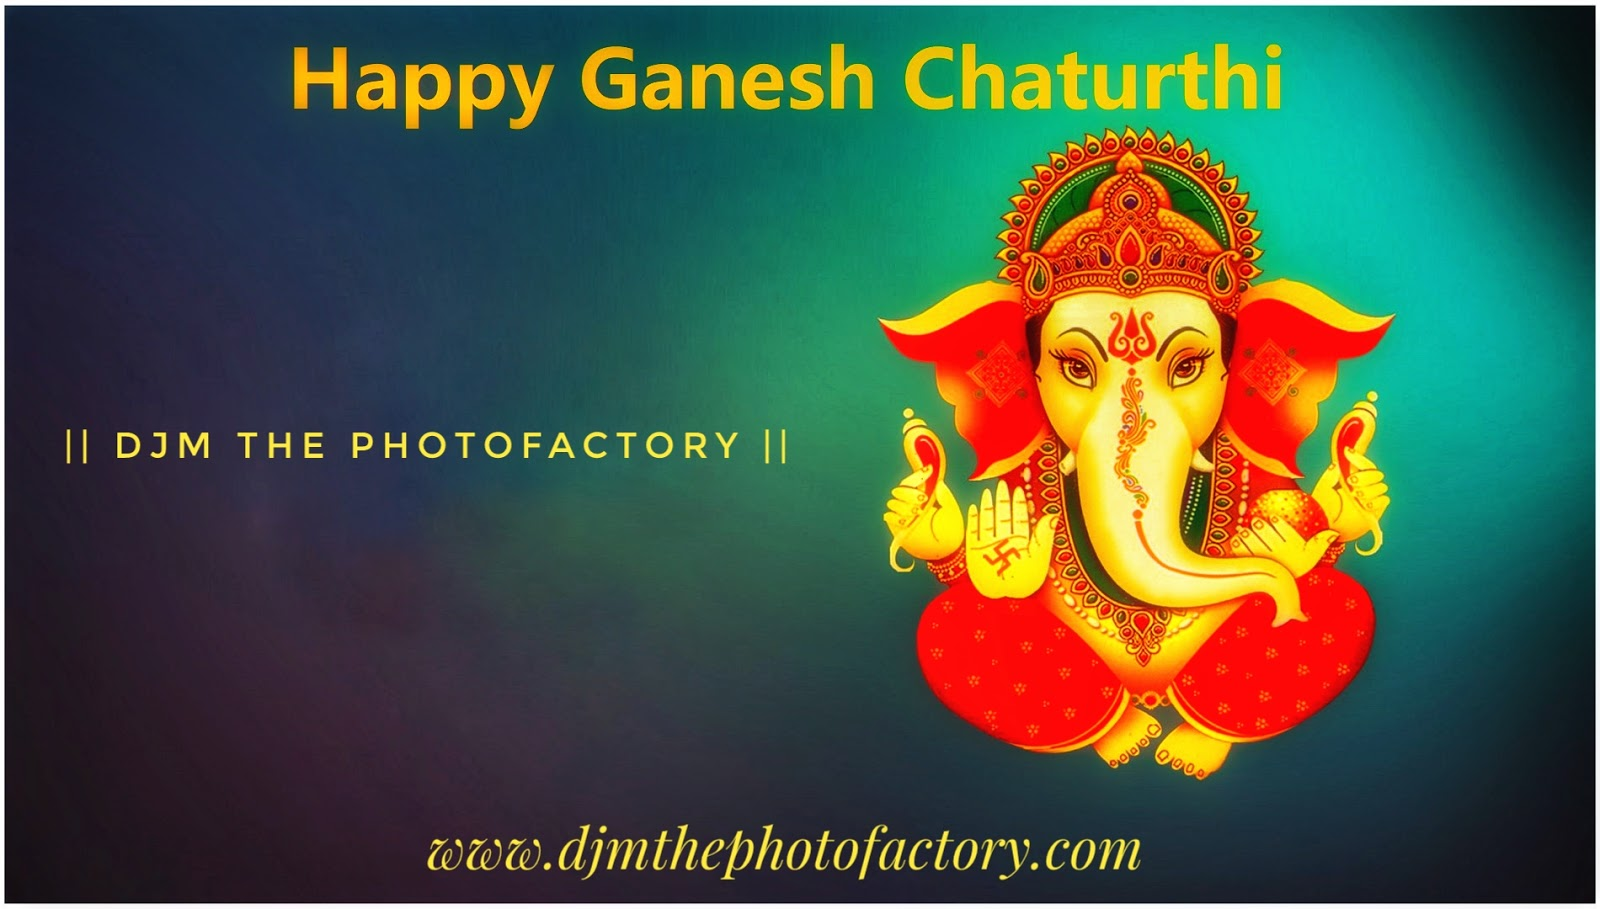 Happy Ganesh Chaturthi 2019 Wishes Images, Photos, Quotes, Messages, Status, Wallpapers